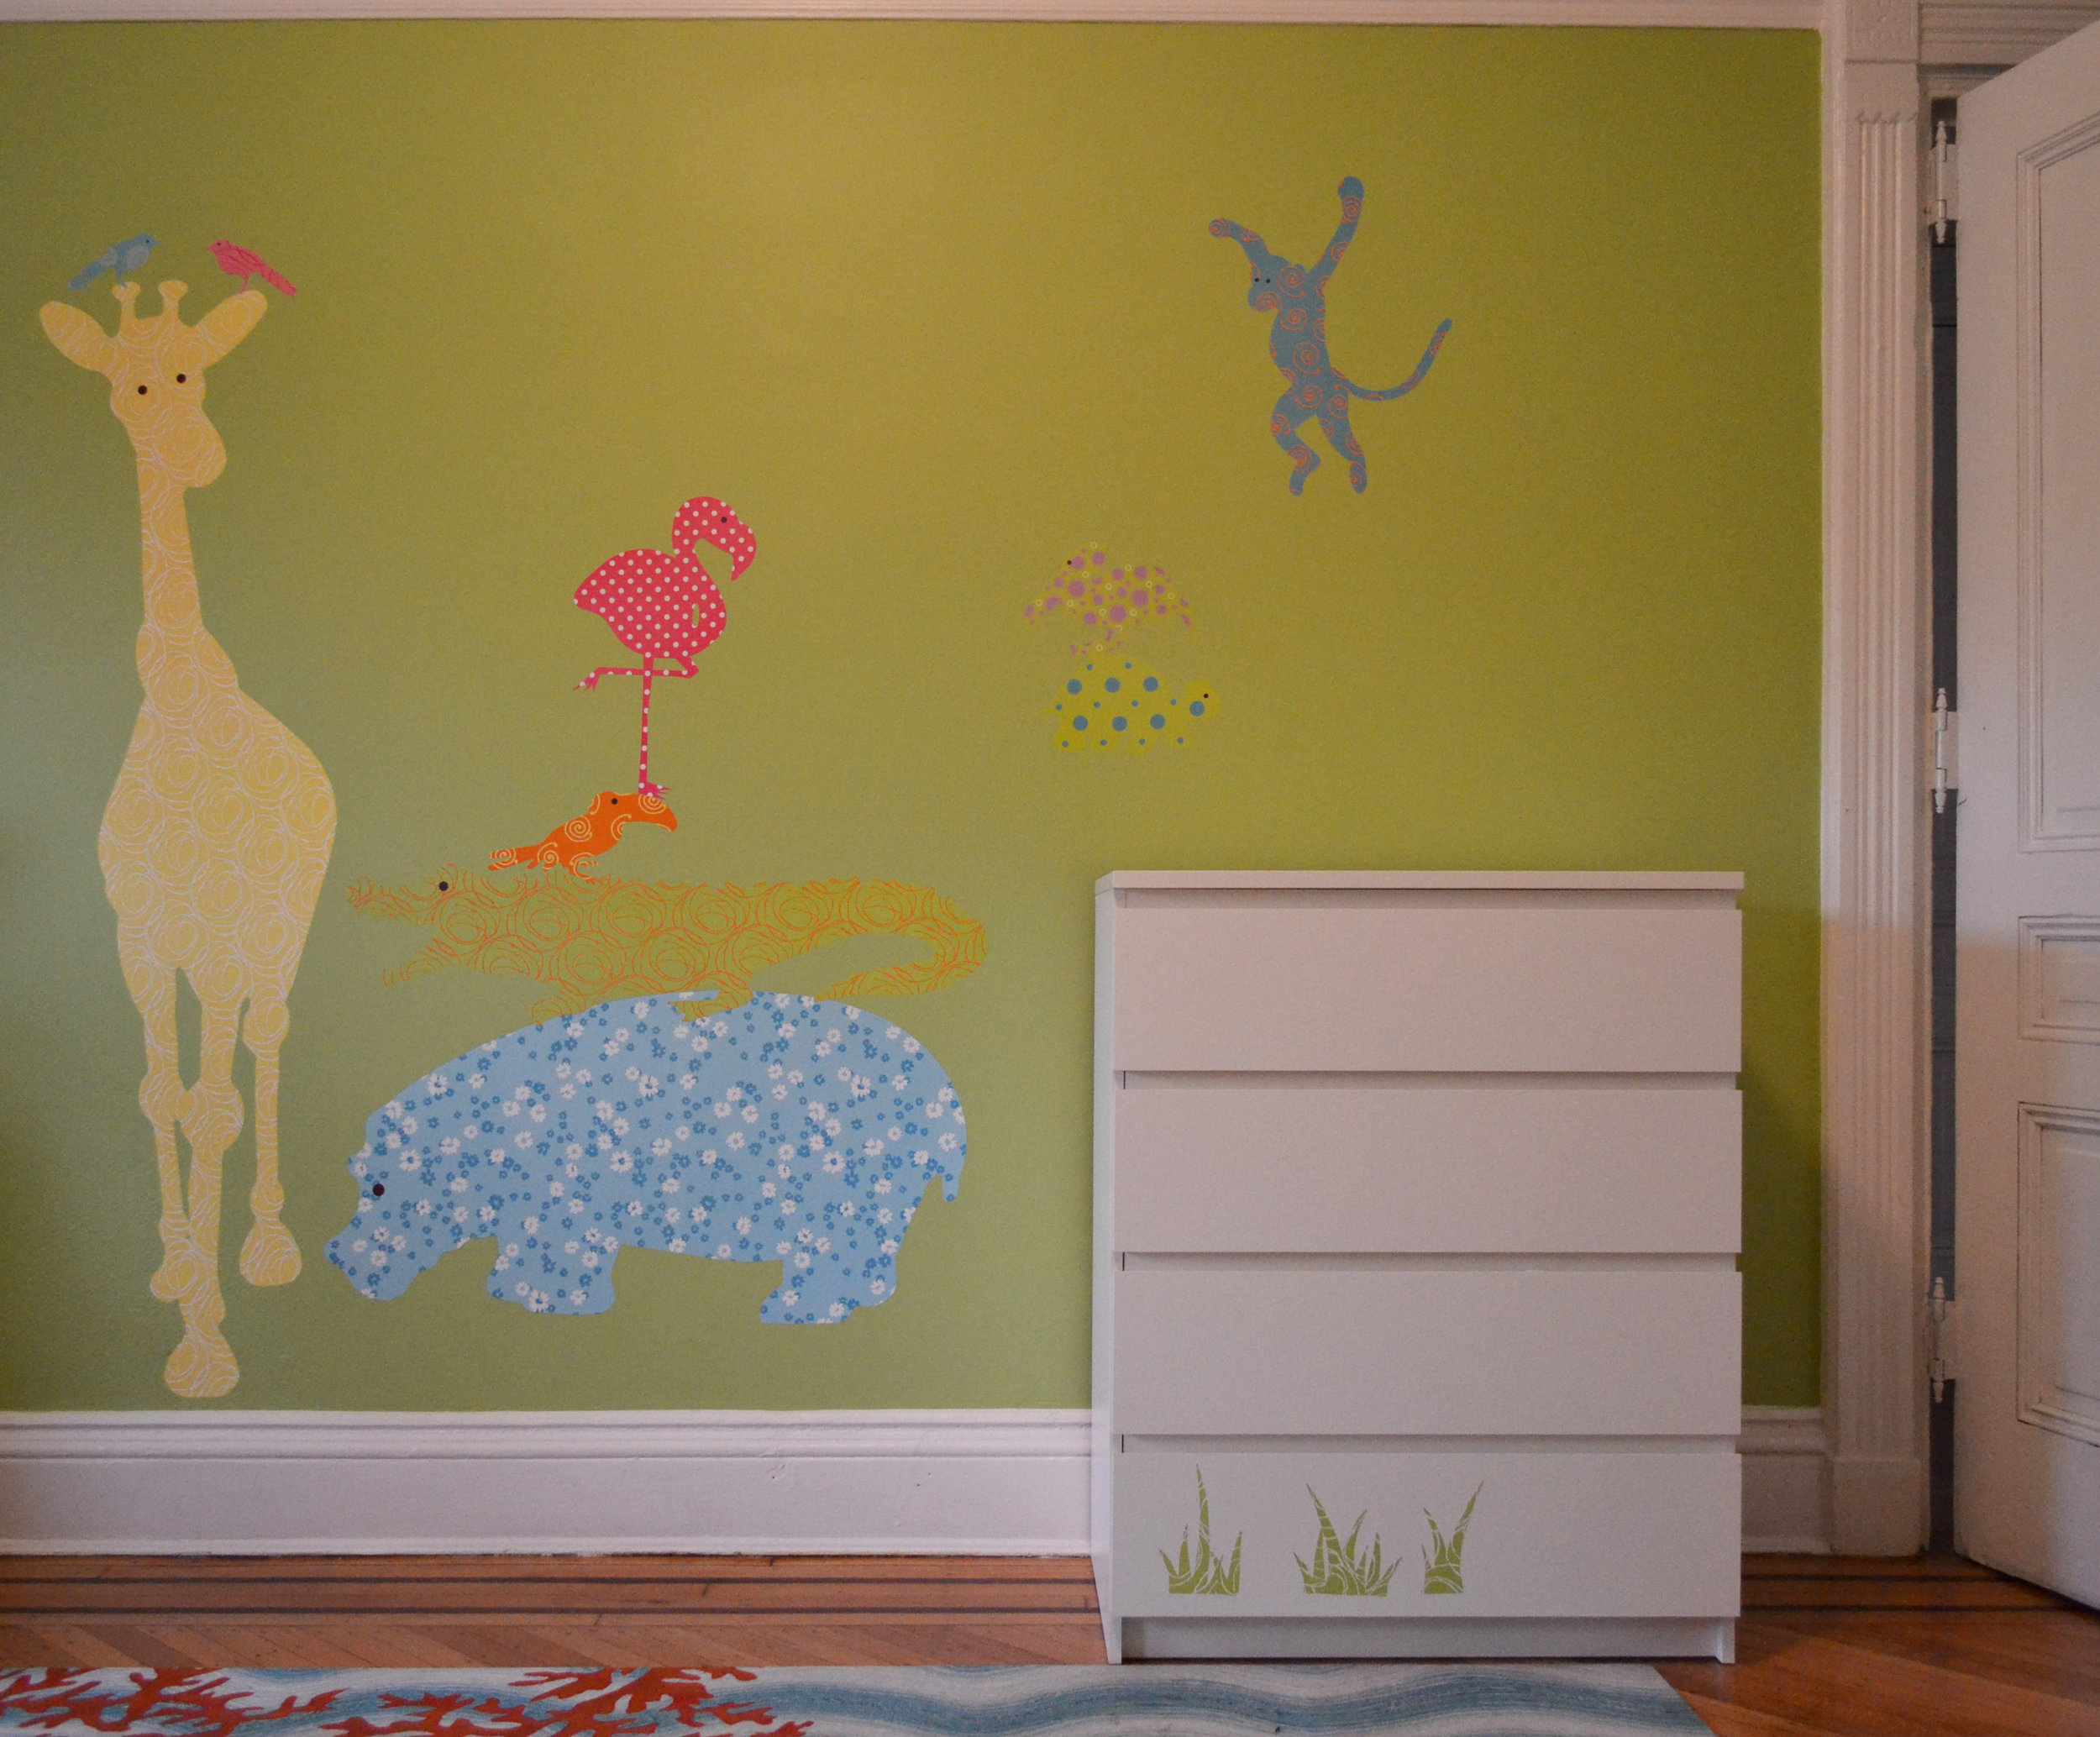 Green-Wall-Art-Decal-Baby-Nursery-JMorrisDesign-Brooklyn-Interior-Designer.jpg